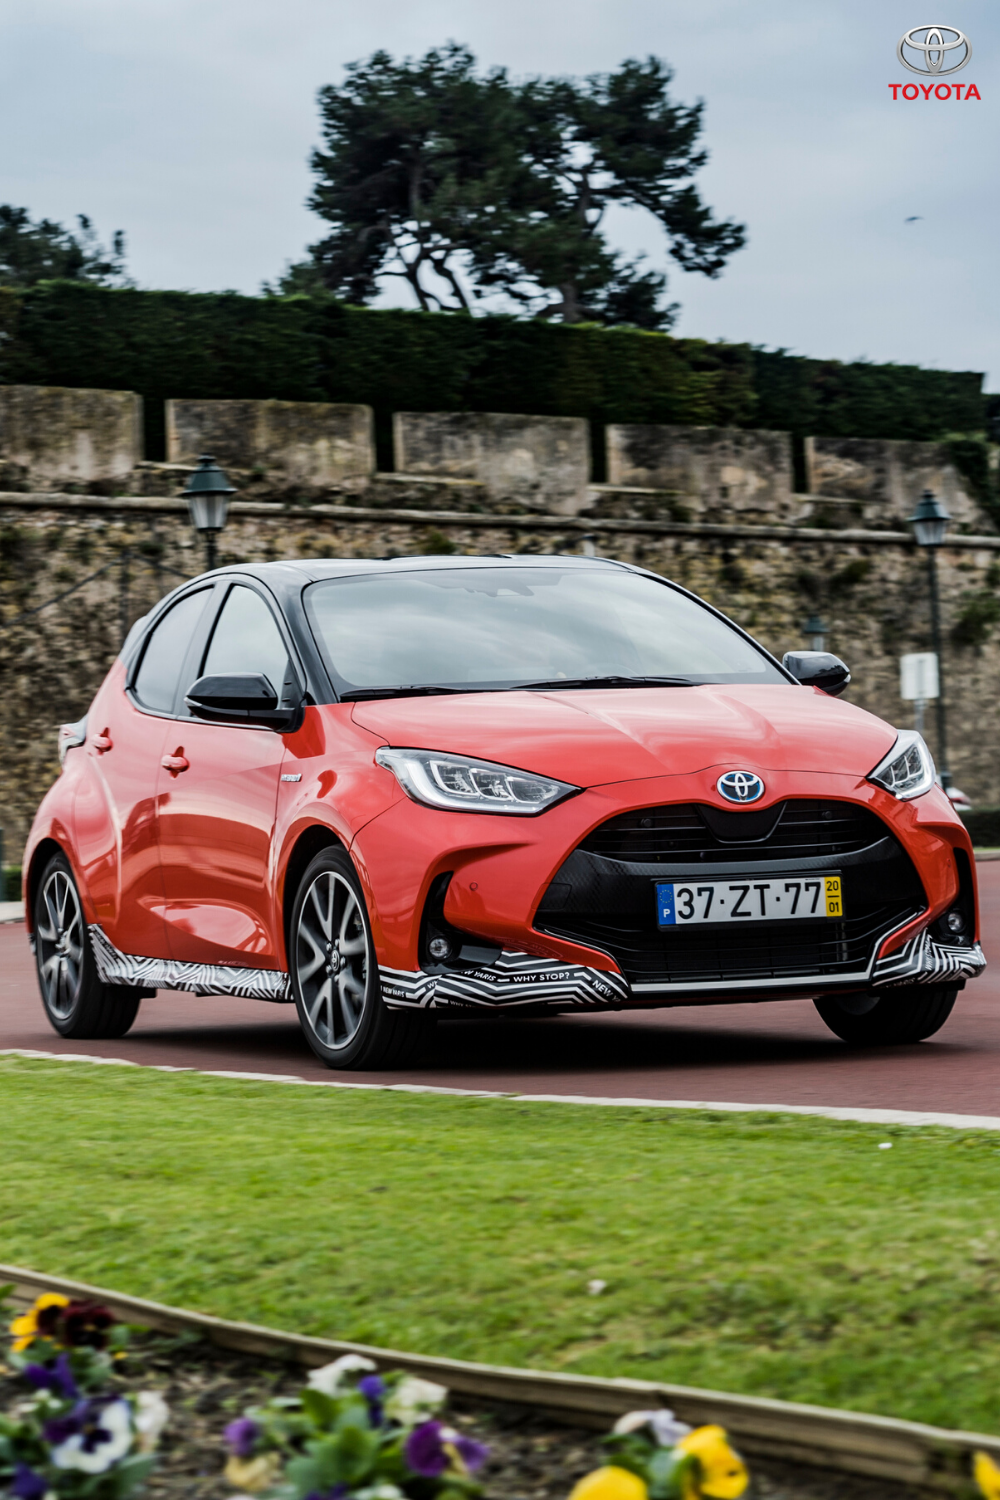 With a new 1.5 litre petrol engine and enhanced 4th gen hybrid system the all-new Yaris benefits from engaging performance and outstanding economy. Click to find out more. #Toyota #ToyotaYaris #SmallCar #CompactCar #CityLiving #HybridCar #NewCars